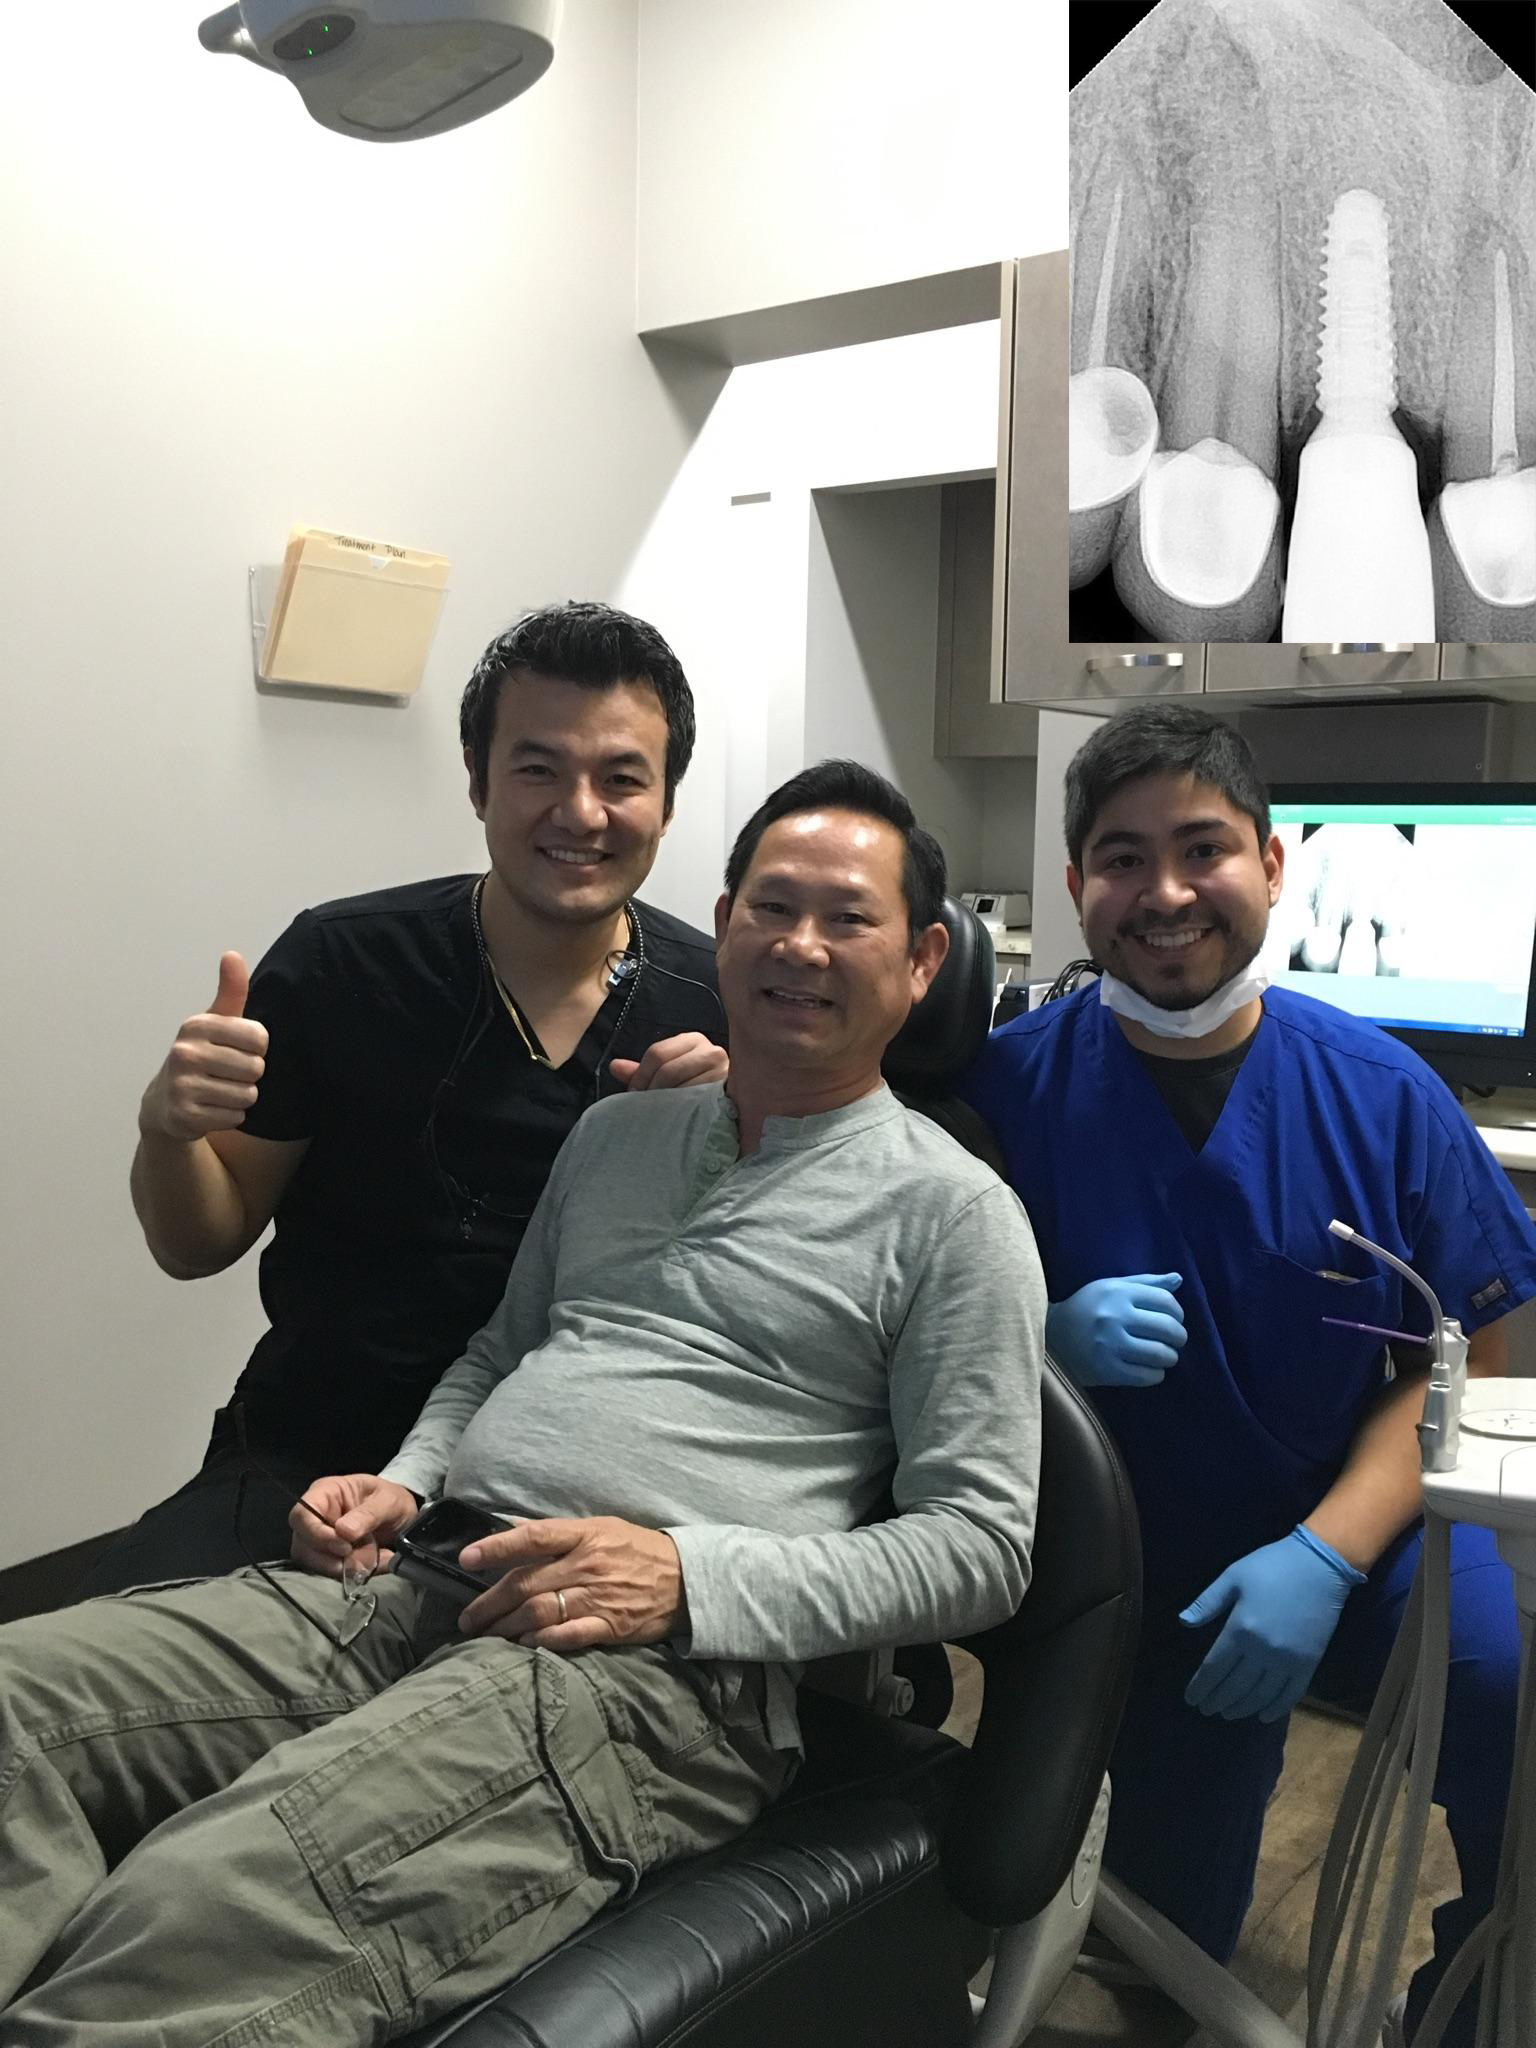 After struggling for years to find a good dentist in Houston, I've finally found it in New Smiles! I can't put in words how happy I am with Dr.Hwang! Thank you for your professional work done, Dr.Hwang! - Robert D.